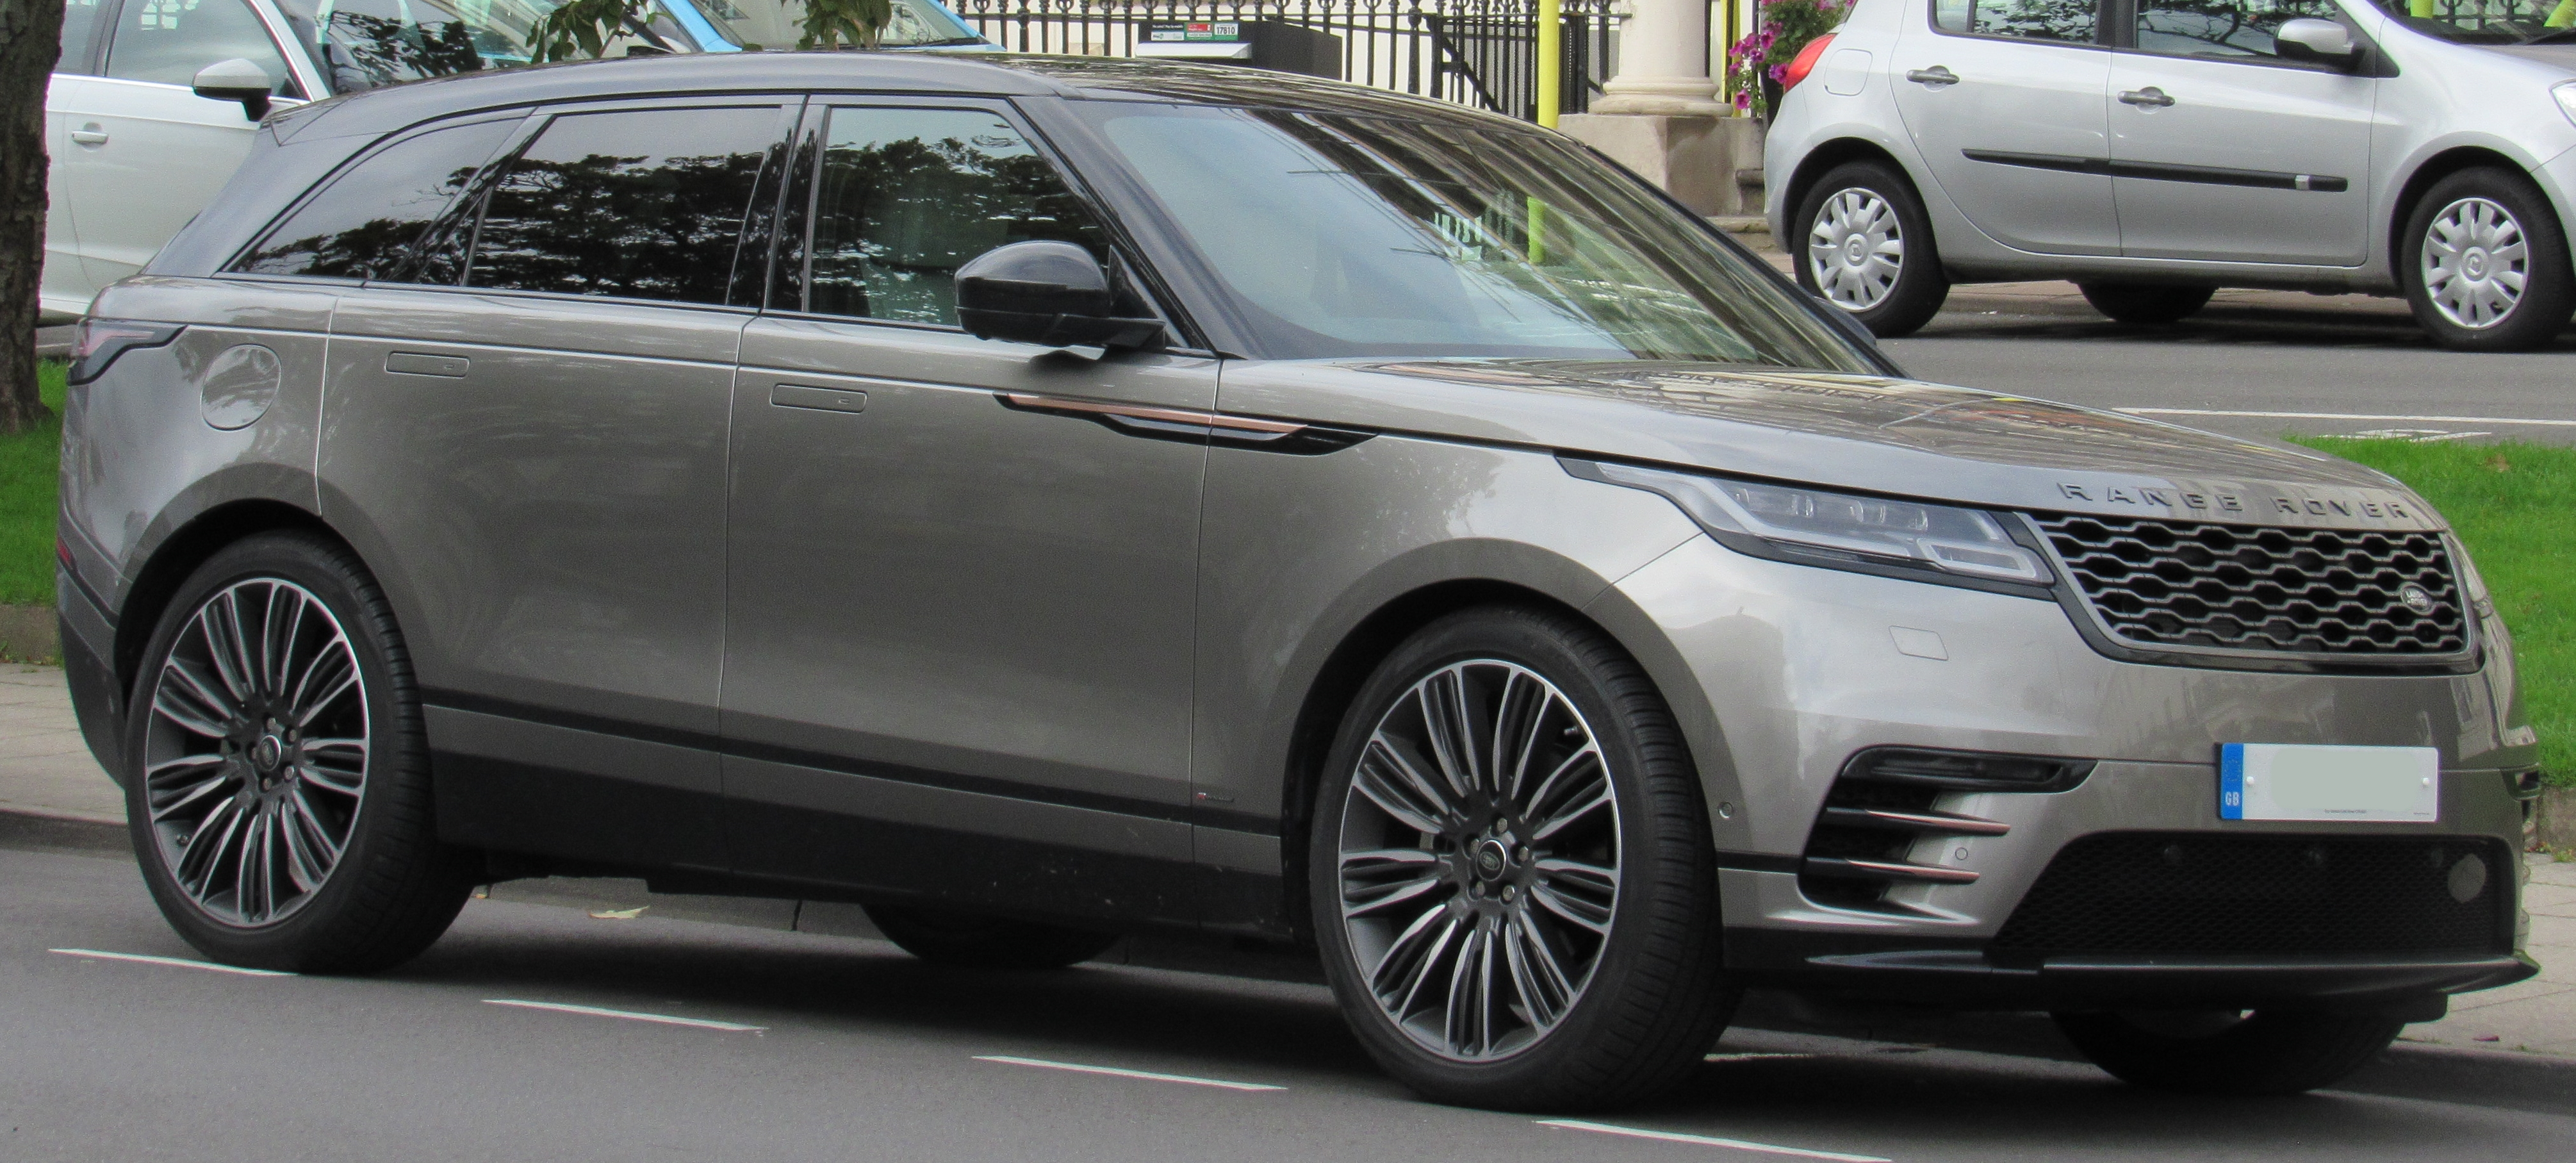 Range Rover Velar Wikipedia In Addition Jaguar S Type Firing Order On Wiring Diagram Xf 2017 Land First Edition D3 30 Front